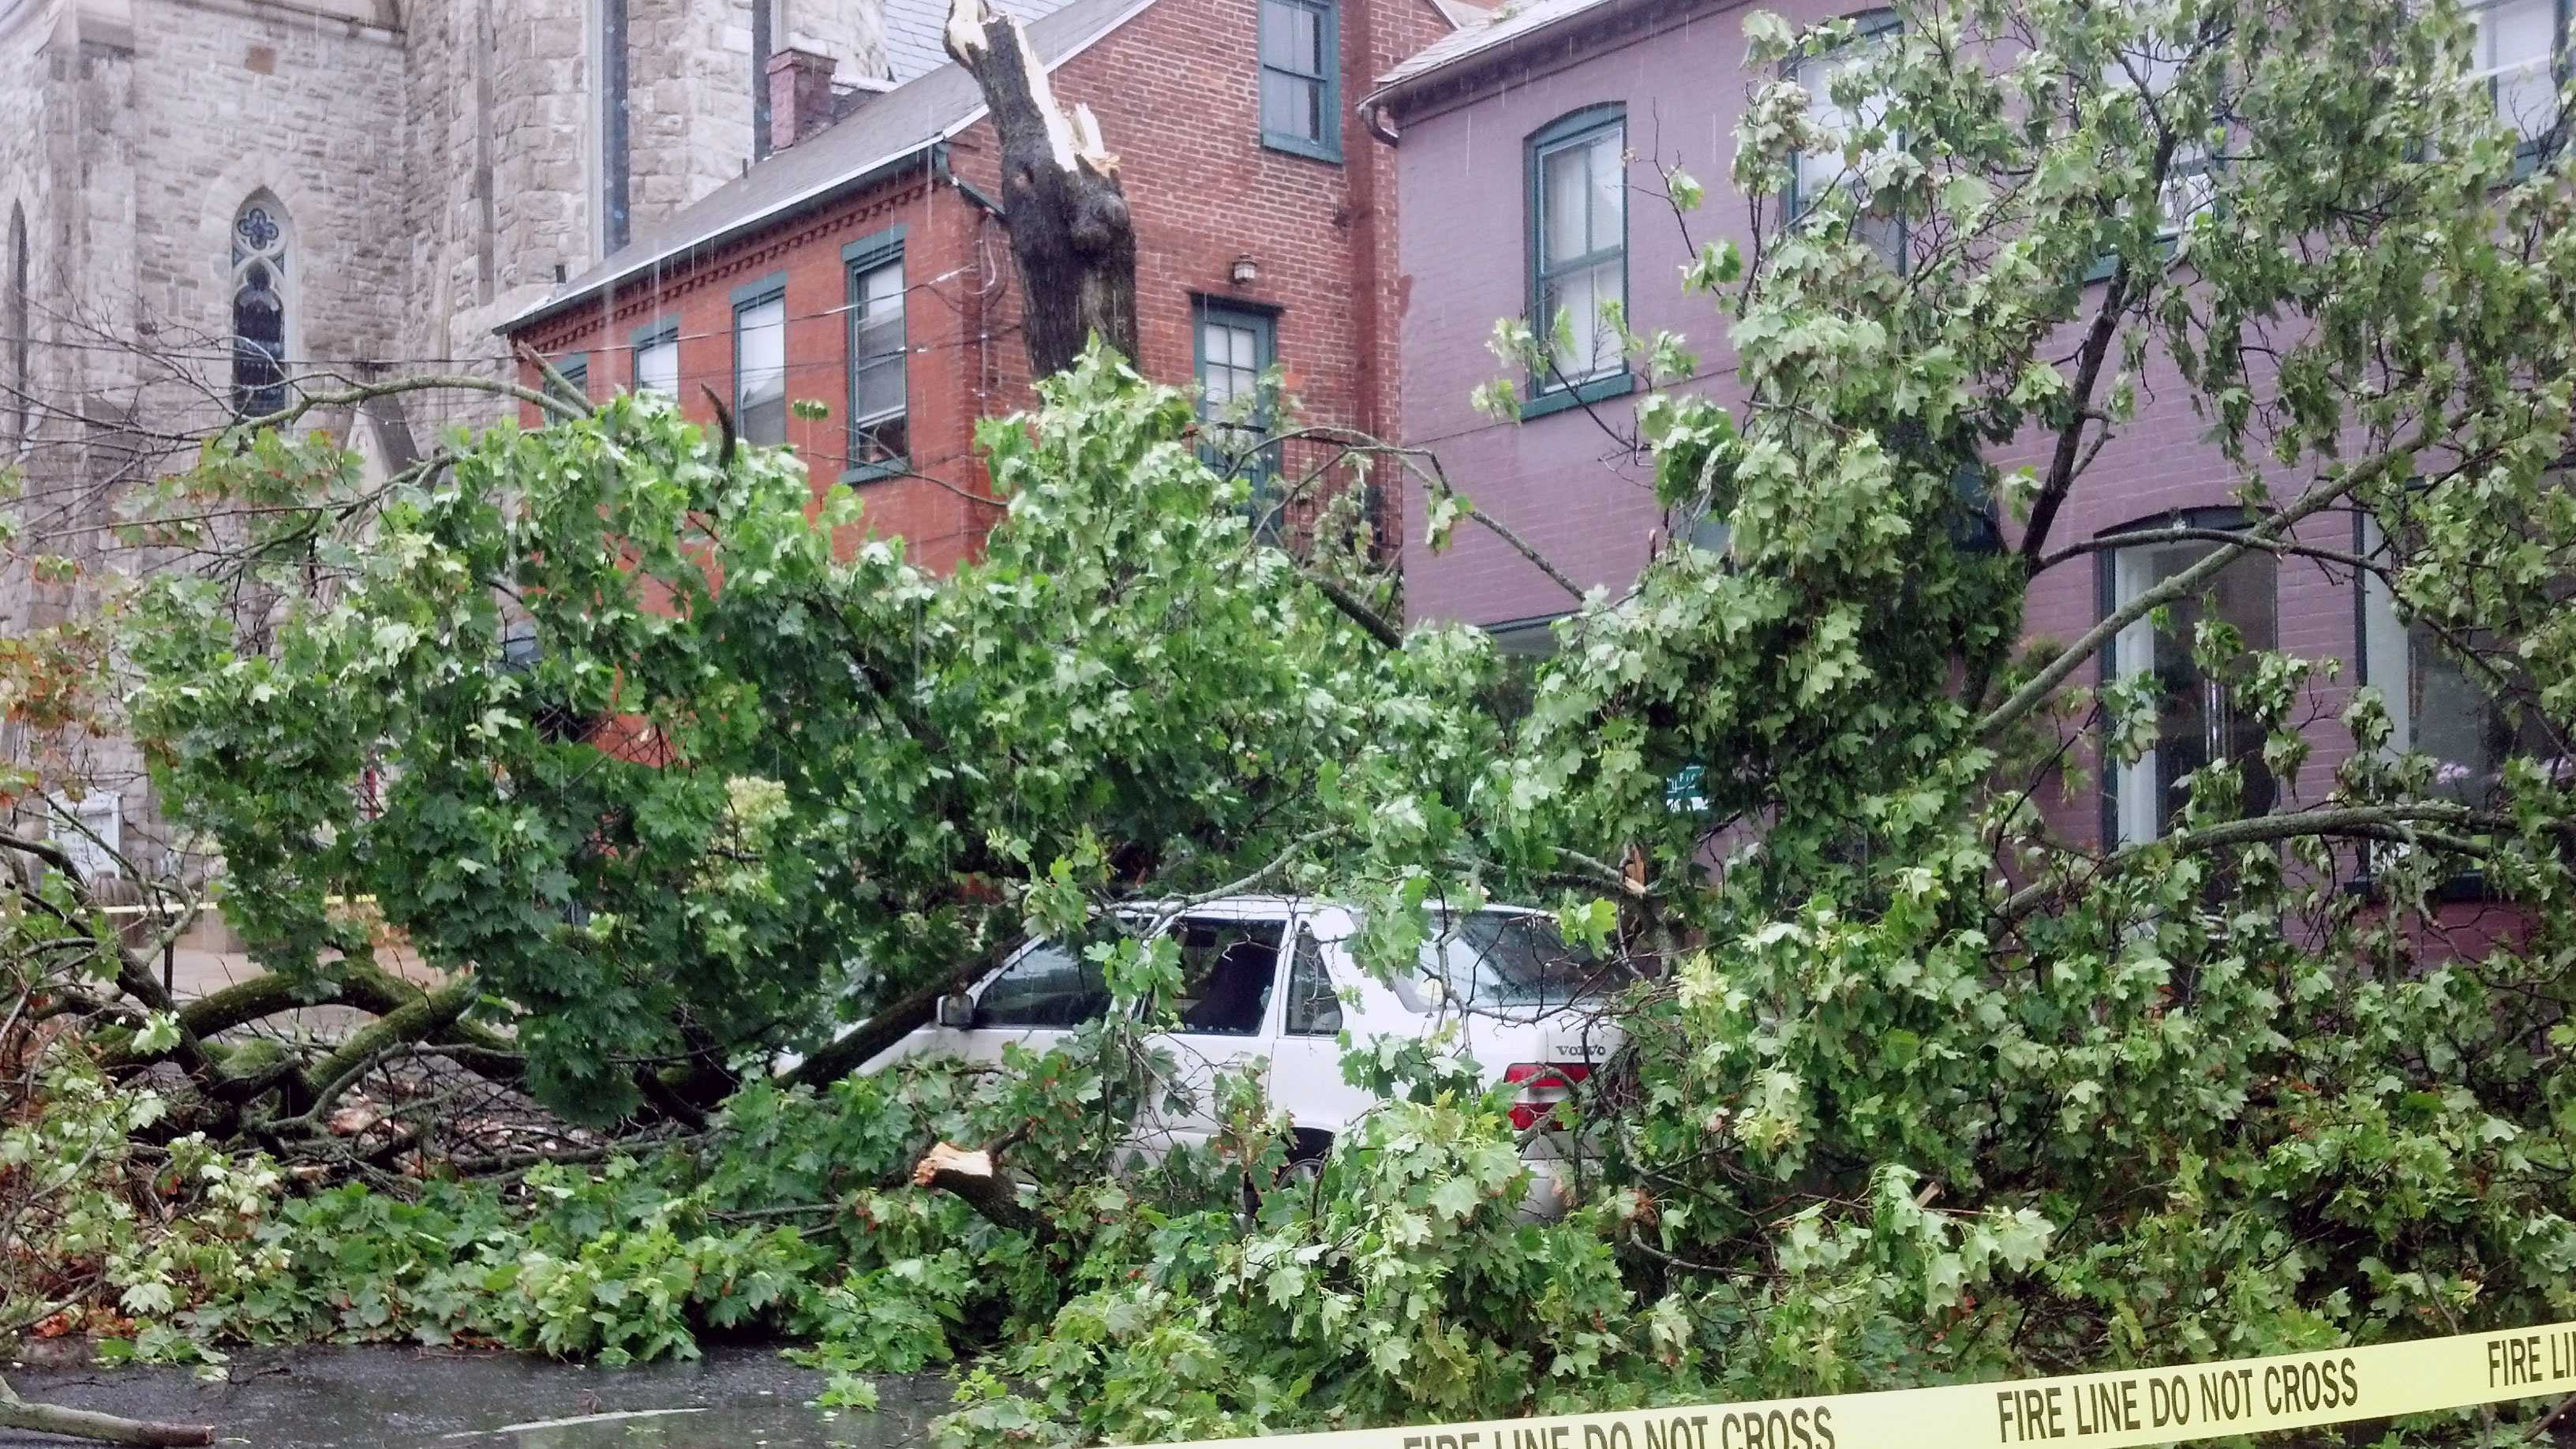 This tree was knocked down in the 200 block of West Orange Street in Lancaster.